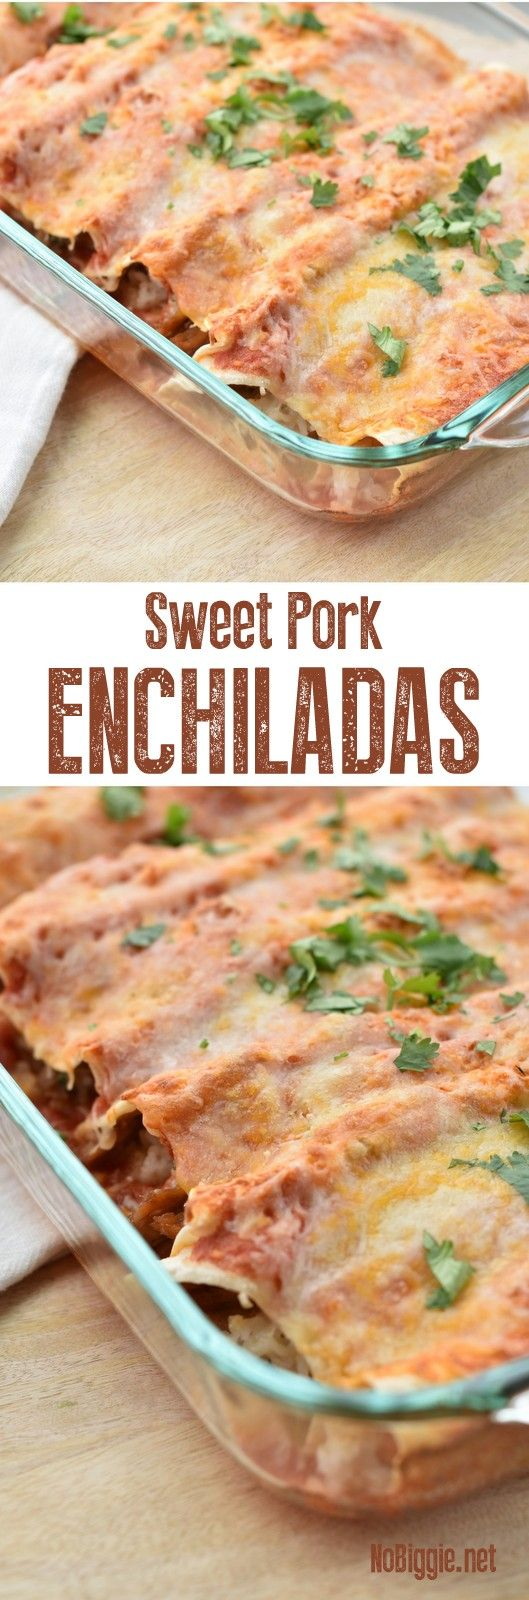 Crock Pot Sweet Pork Enchiladas | NoBiggie.net